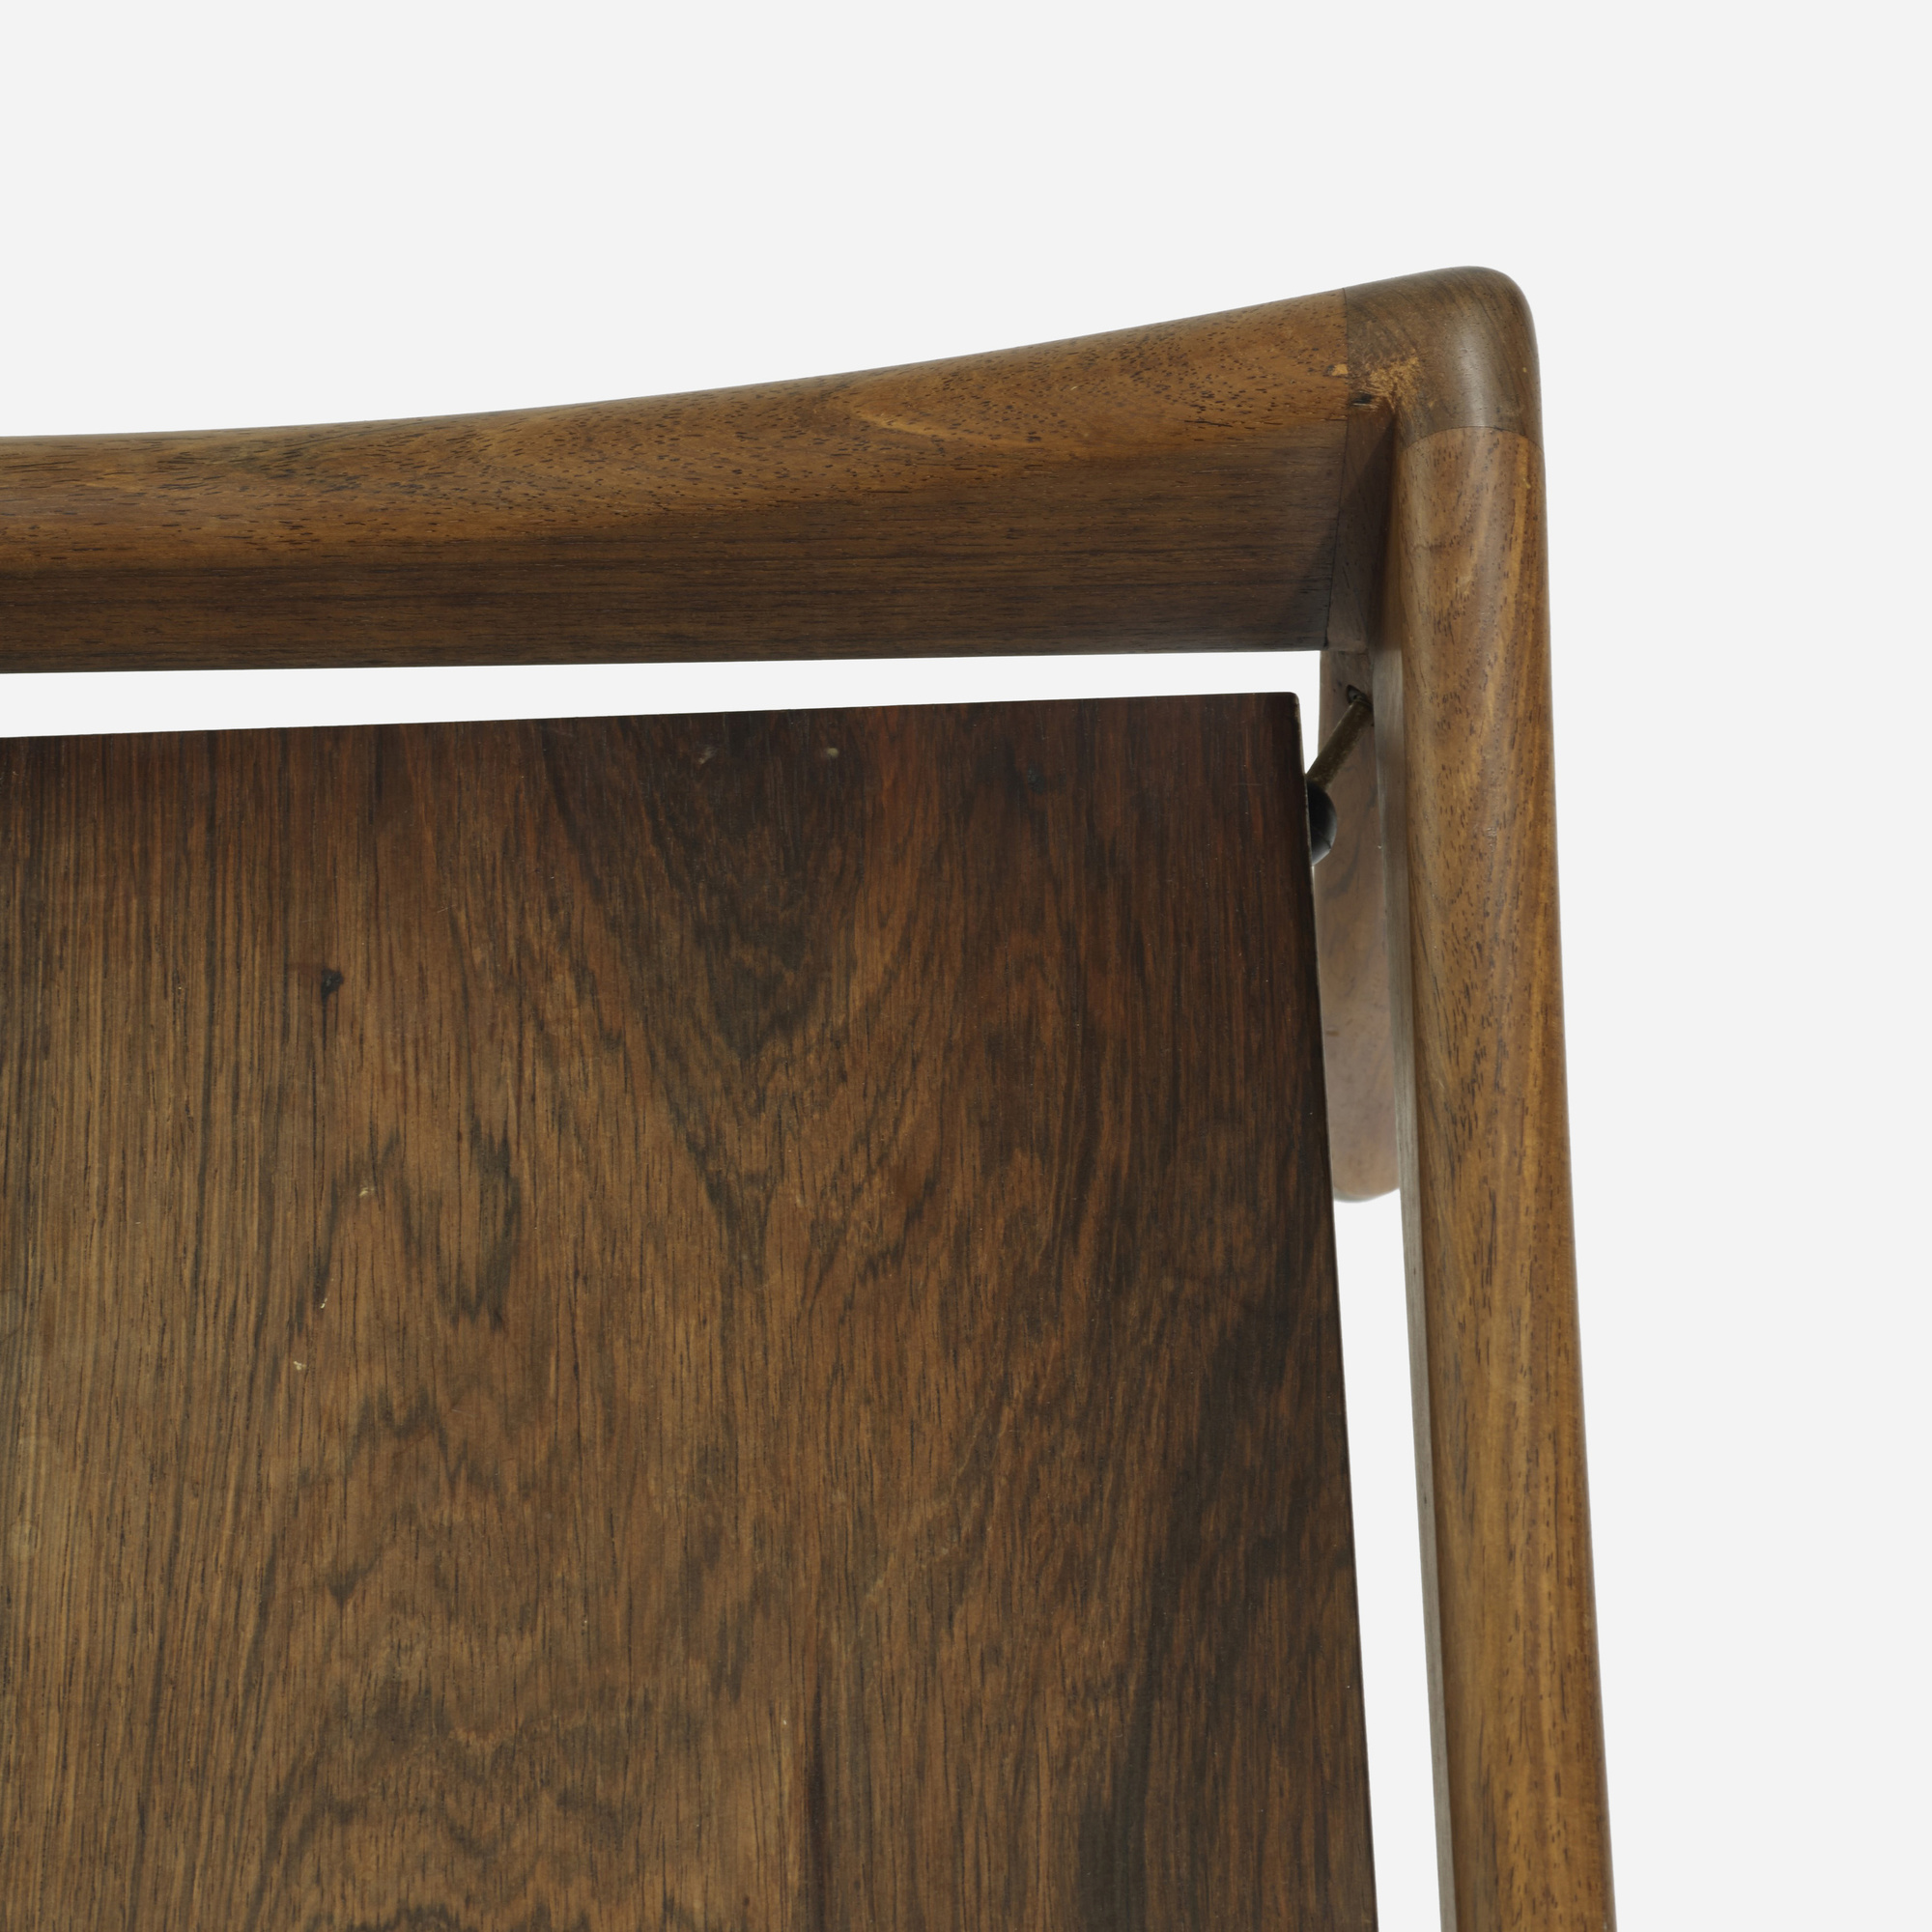 773: Kristian Vedel / pair of Modus lounge chairs and occasional table (2 of 4)